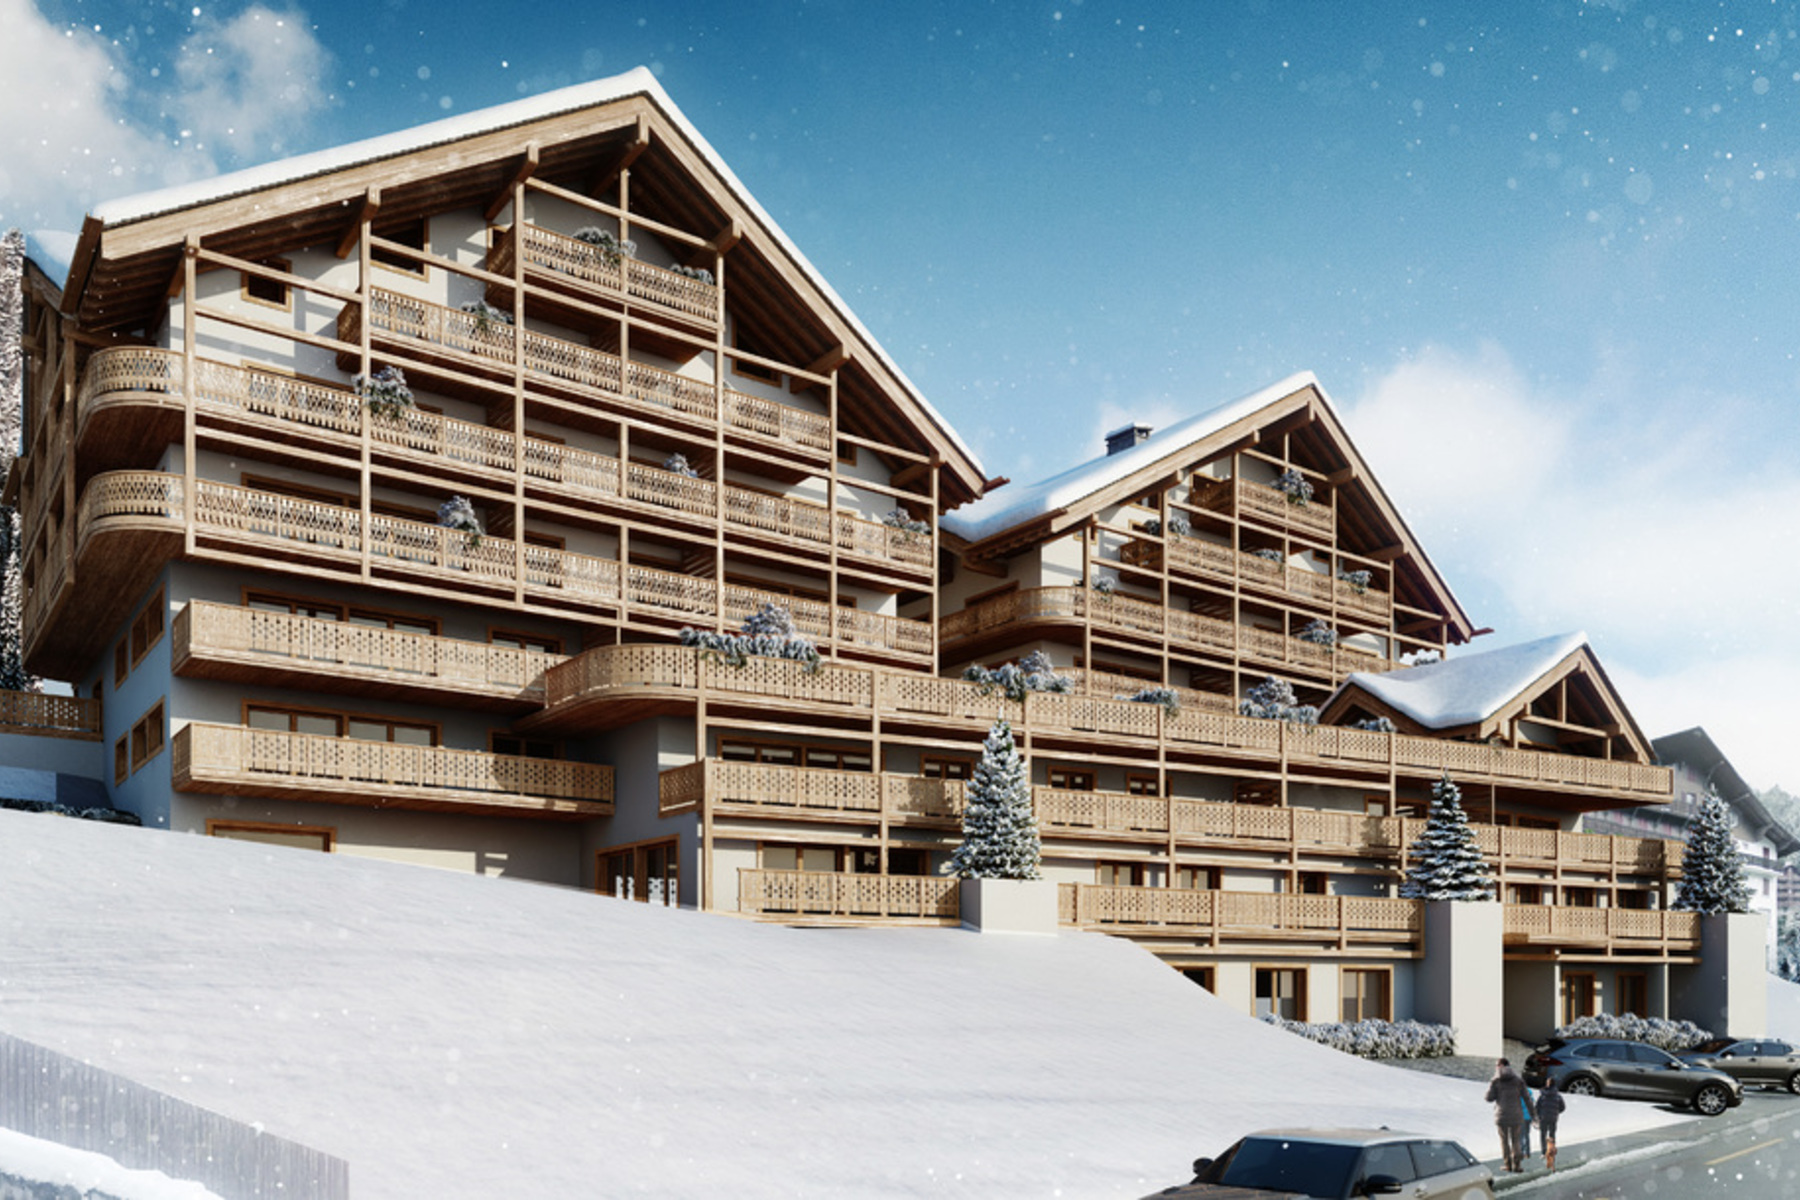 公寓 為 出售 在 Résidence Le Montagnier - Stunning apartment with mountain views Champéry Champery, 瓦萊州, 1874 瑞士